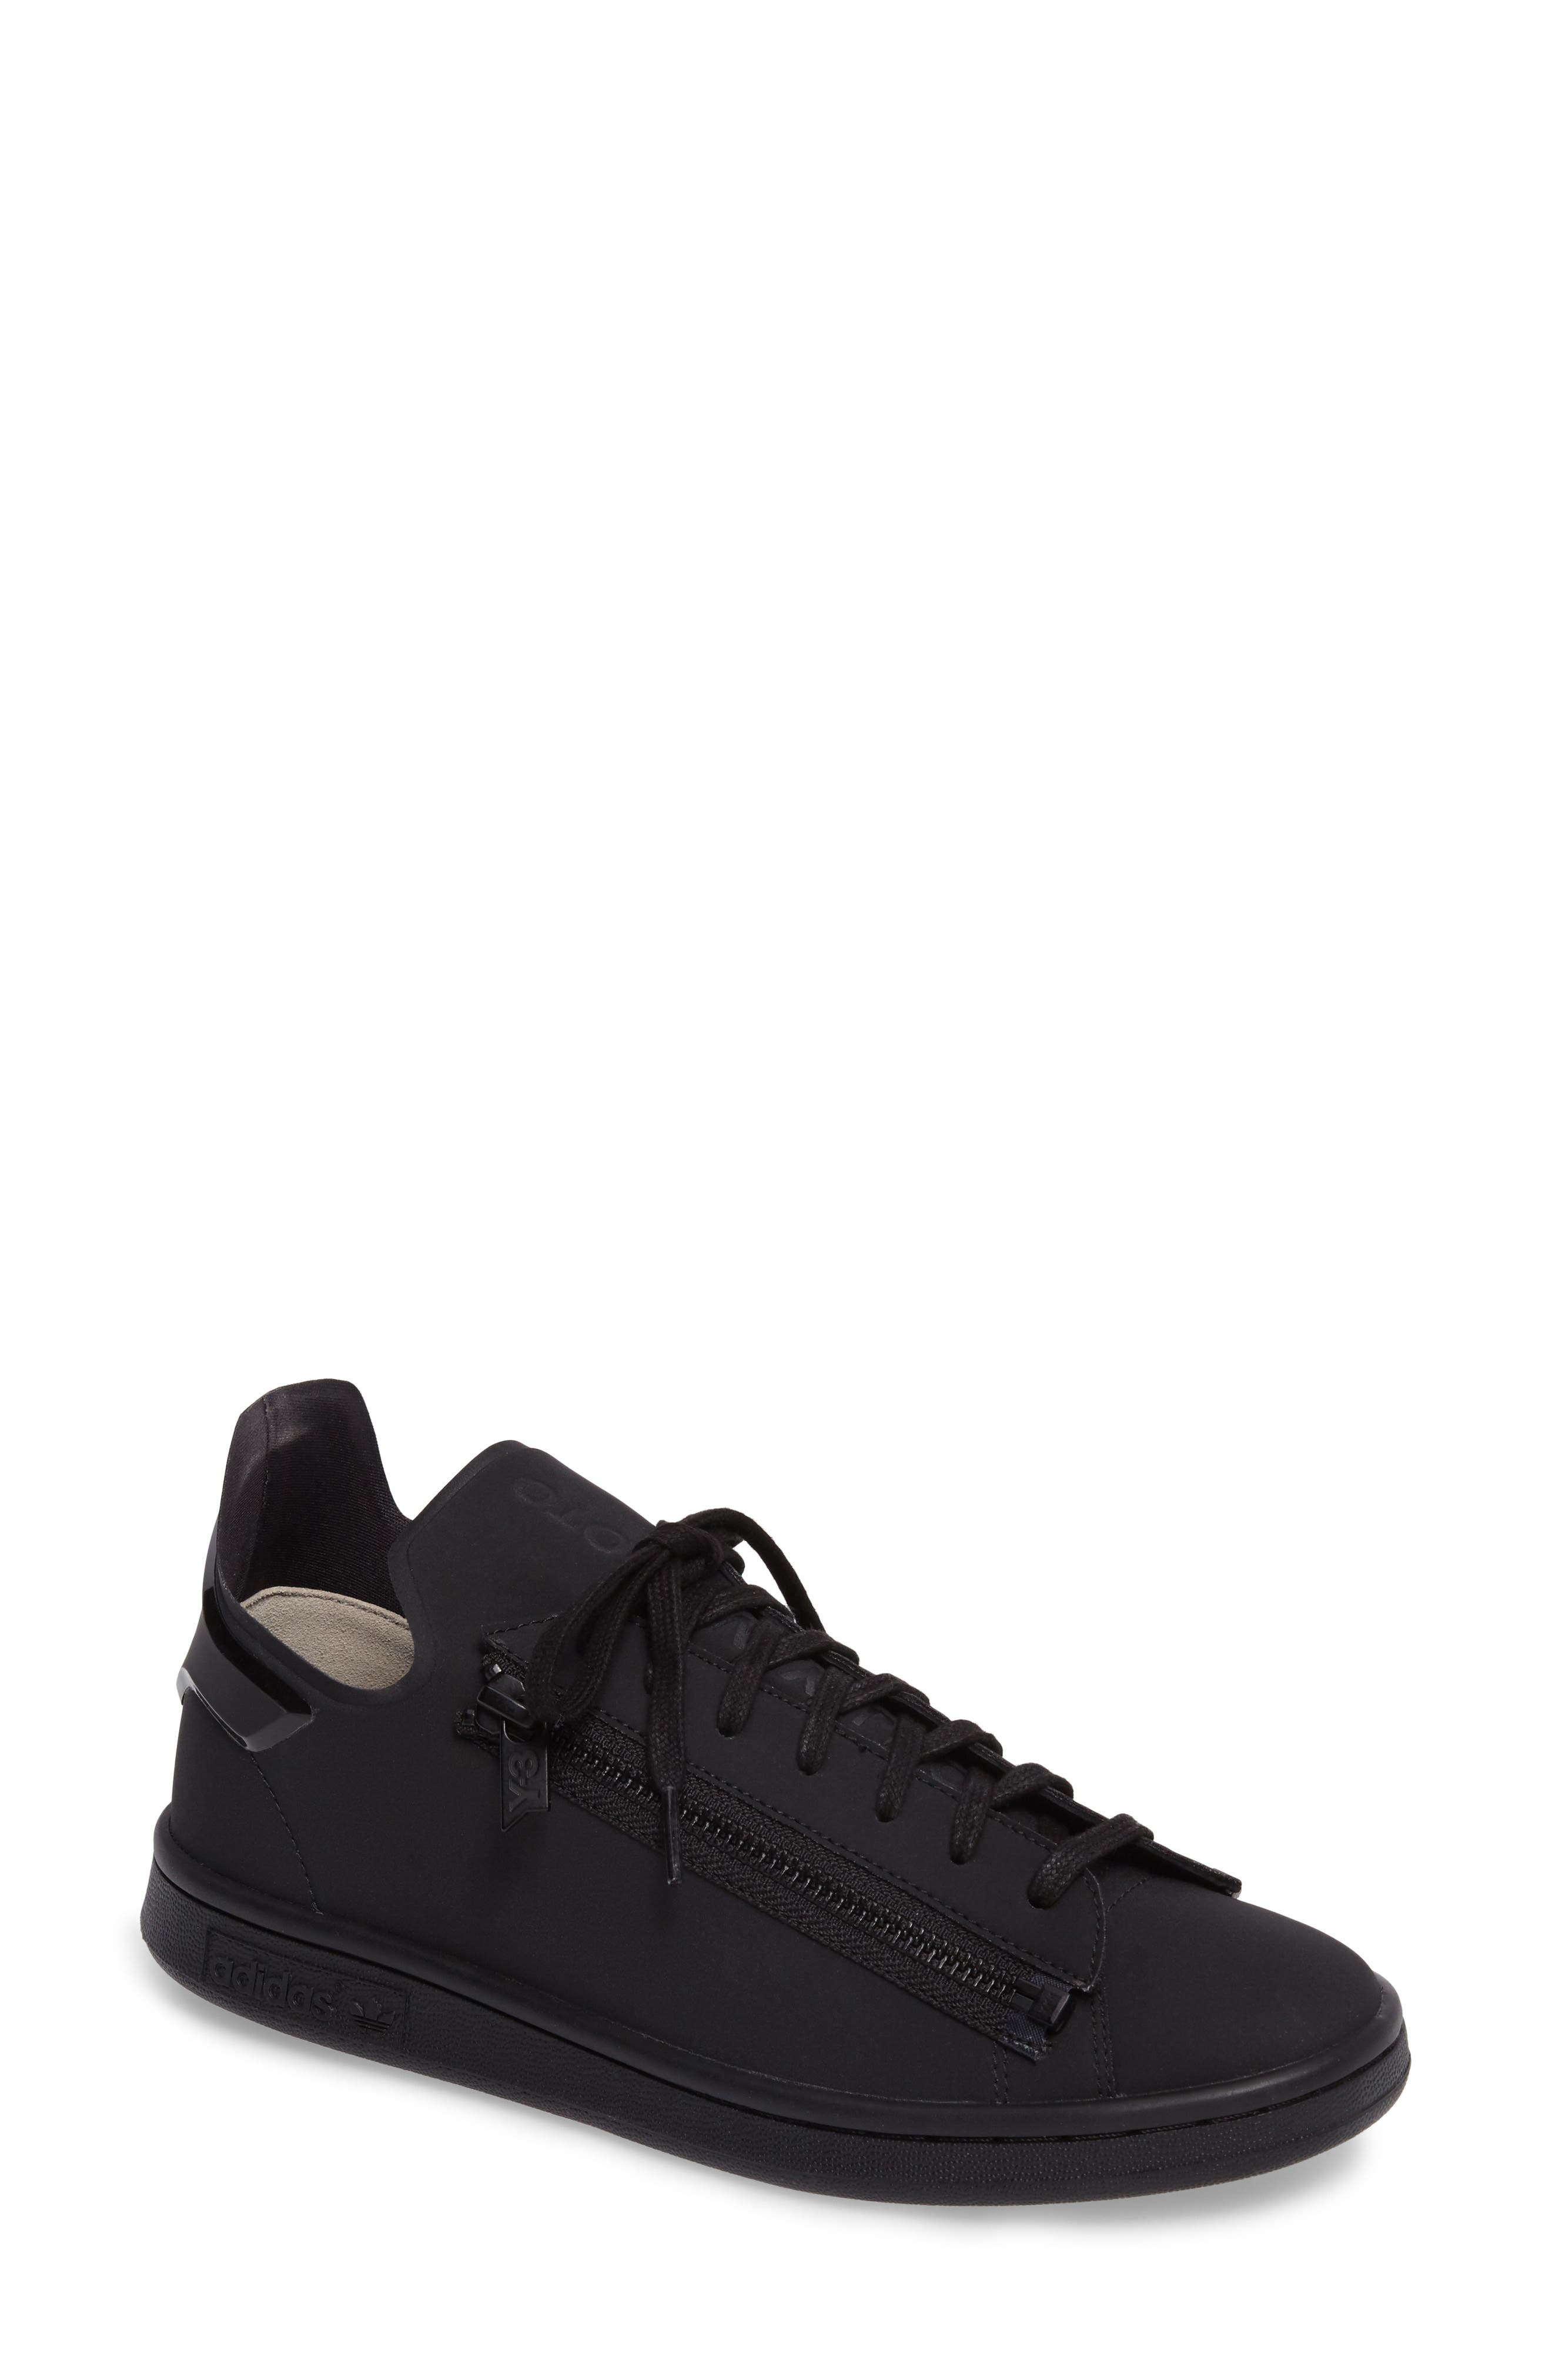 Stan Low Top Sneaker,                         Main,                         color, Core Black